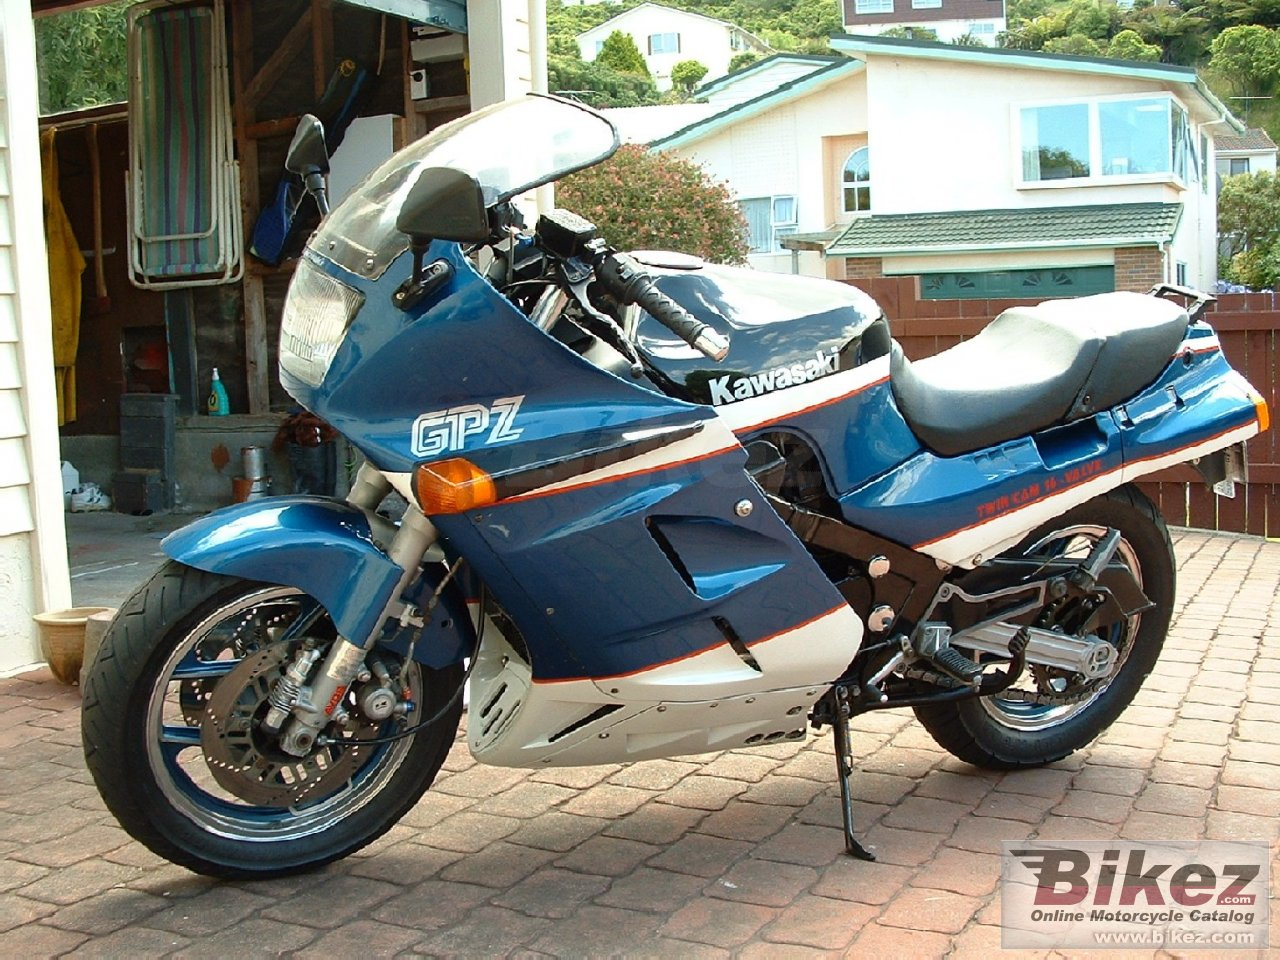 Big Mitch Burchett gpz 1000 rx picture and wallpaper from Bikez.com